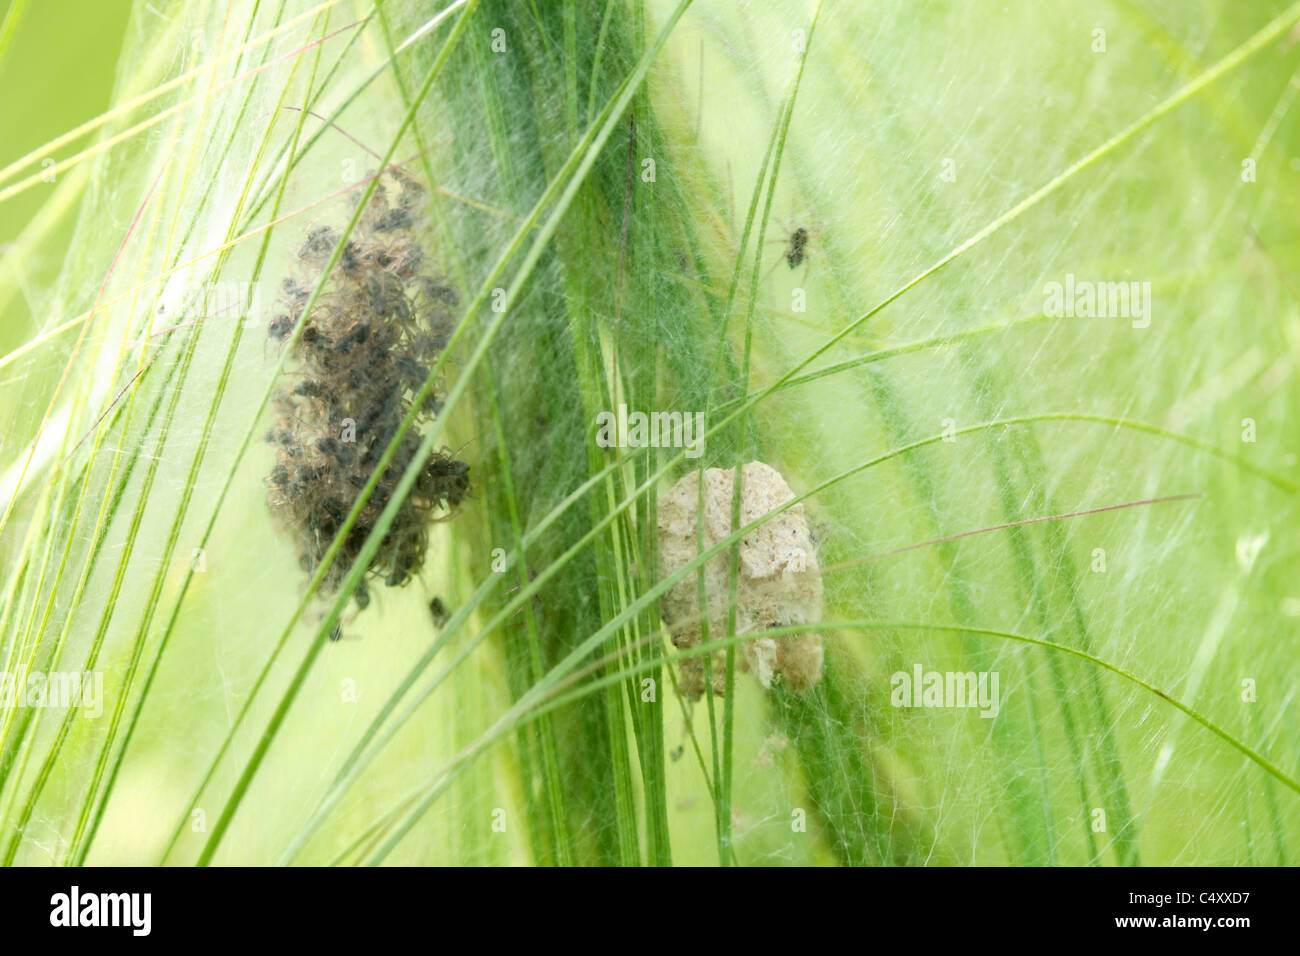 A nest of newly hatched spiderlings and an abandoned egg case protected by a tangled web in a wheat field. - Stock Image